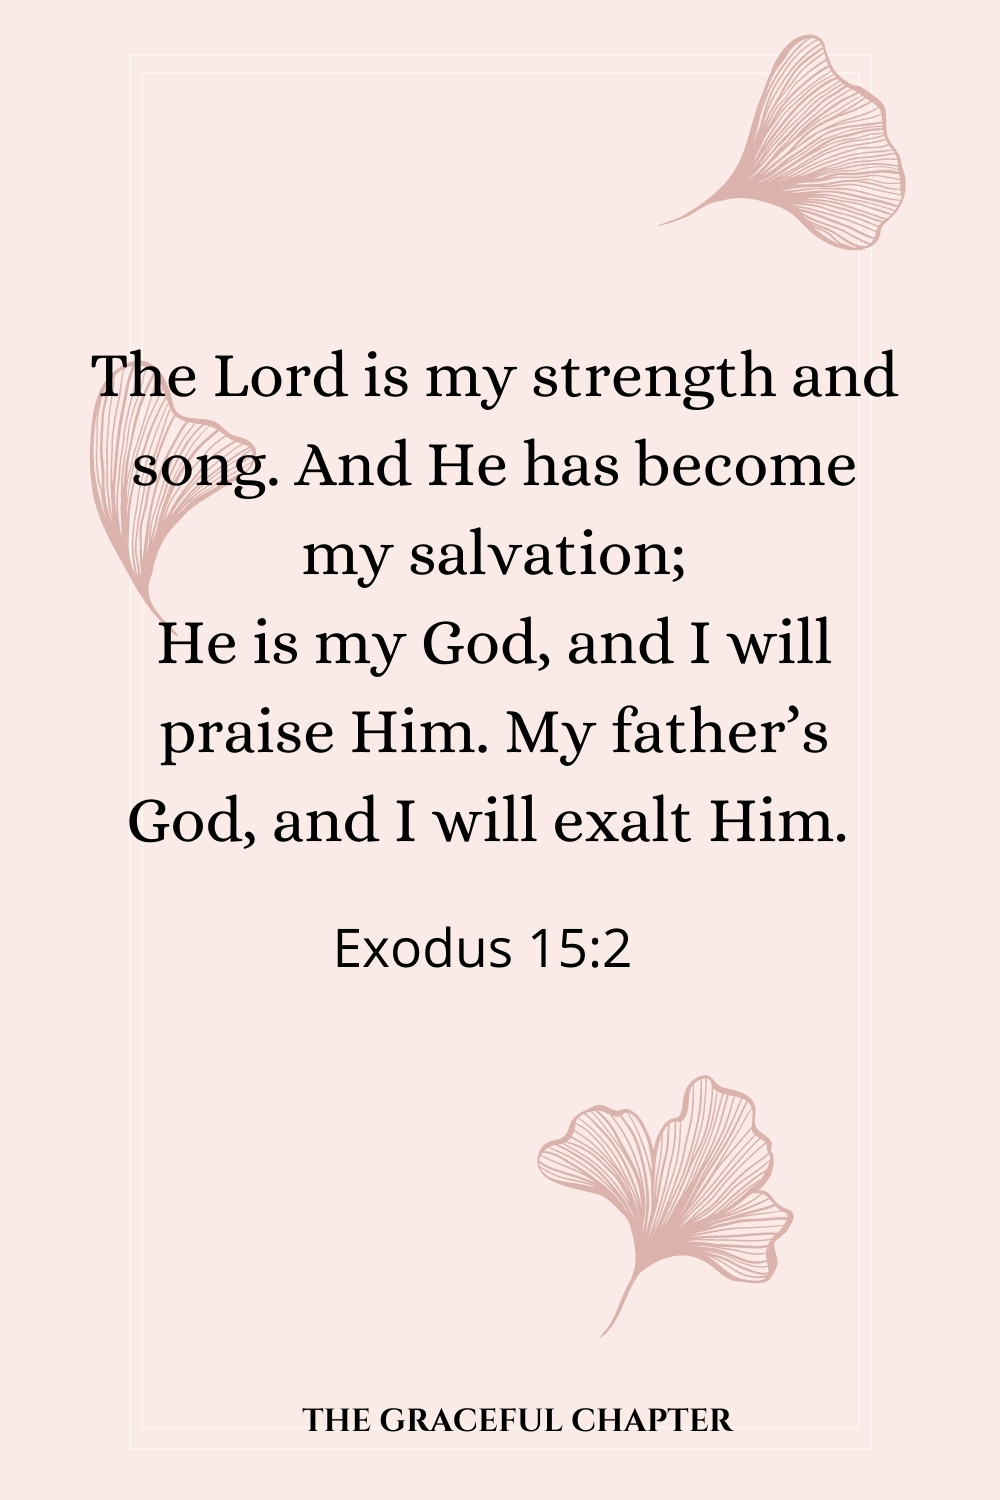 The Lord is my strength and song, And He has become my salvation; He is my God, and I will praise Him; My father's God, and I will exalt Him.  Exodus 15:2